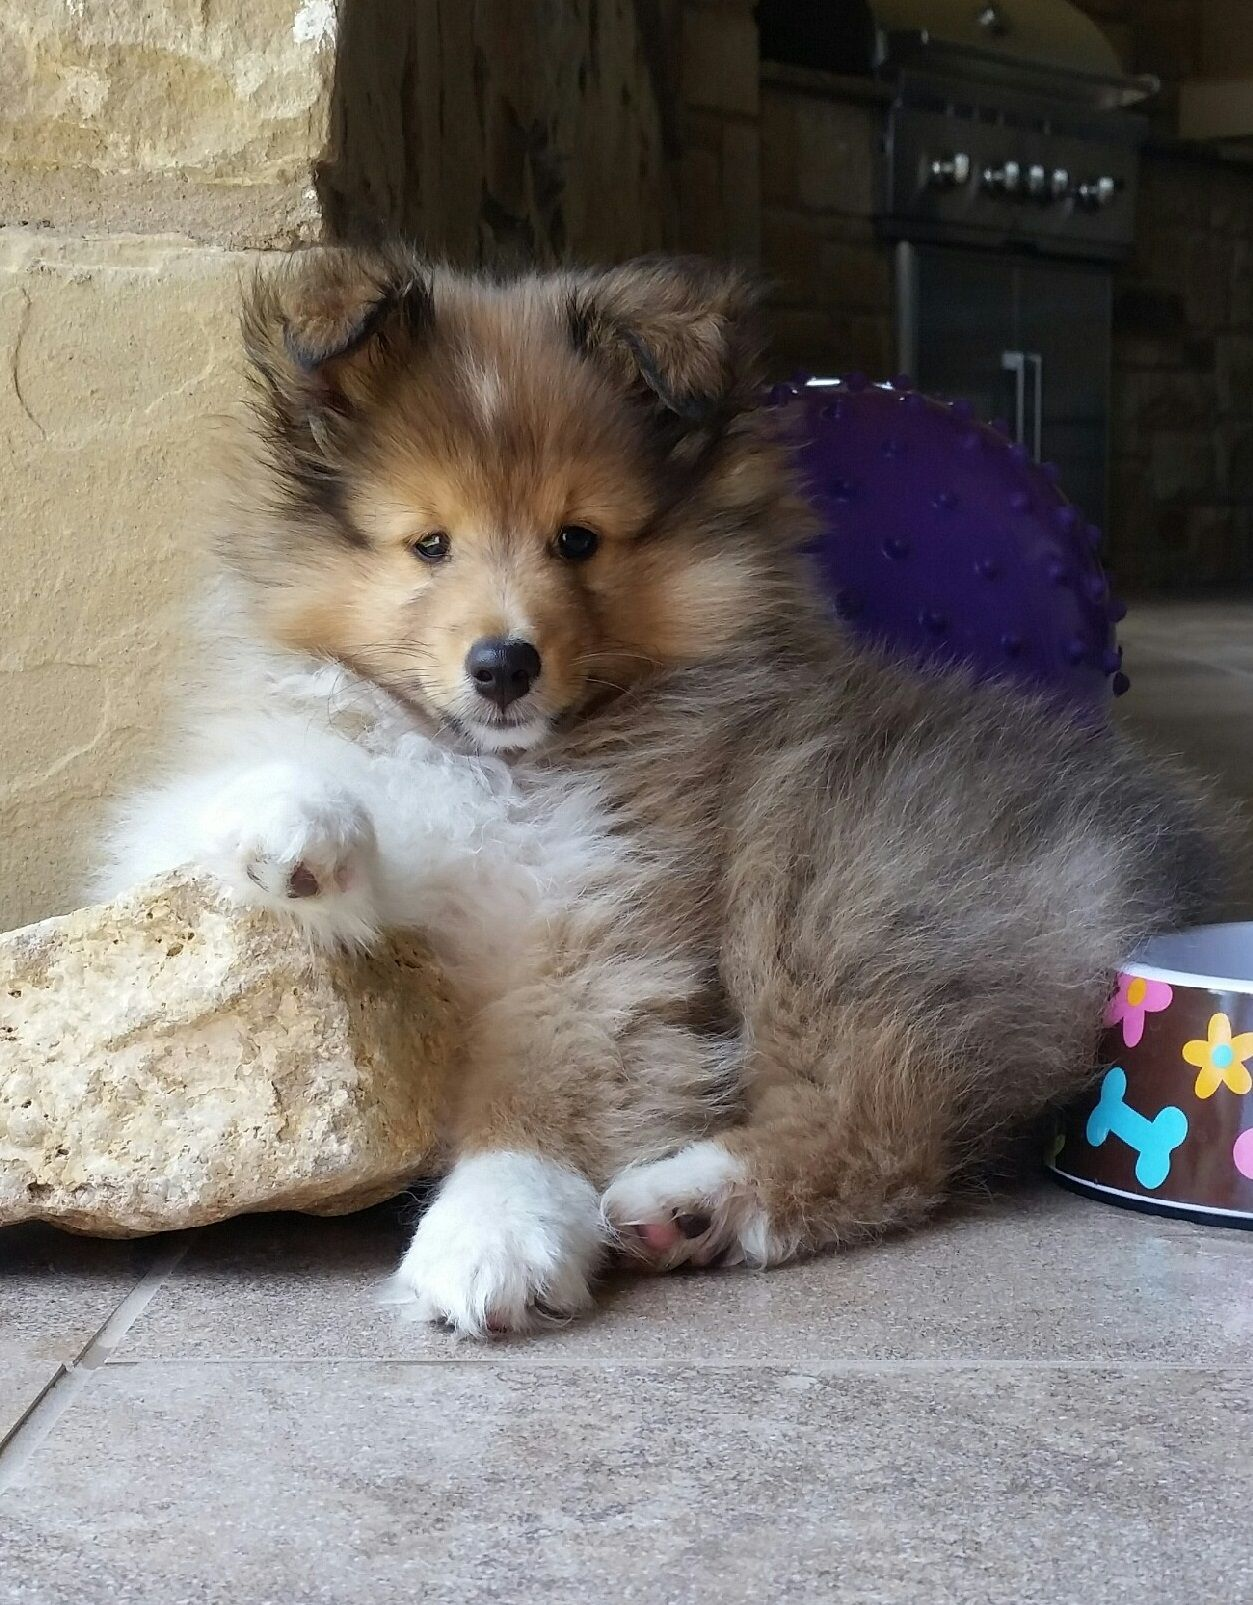 Shetland Sheepdog Energetic And Playful In 2020 Sheep Dog Puppy Shetland Sheepdog Puppies Sheltie Dogs